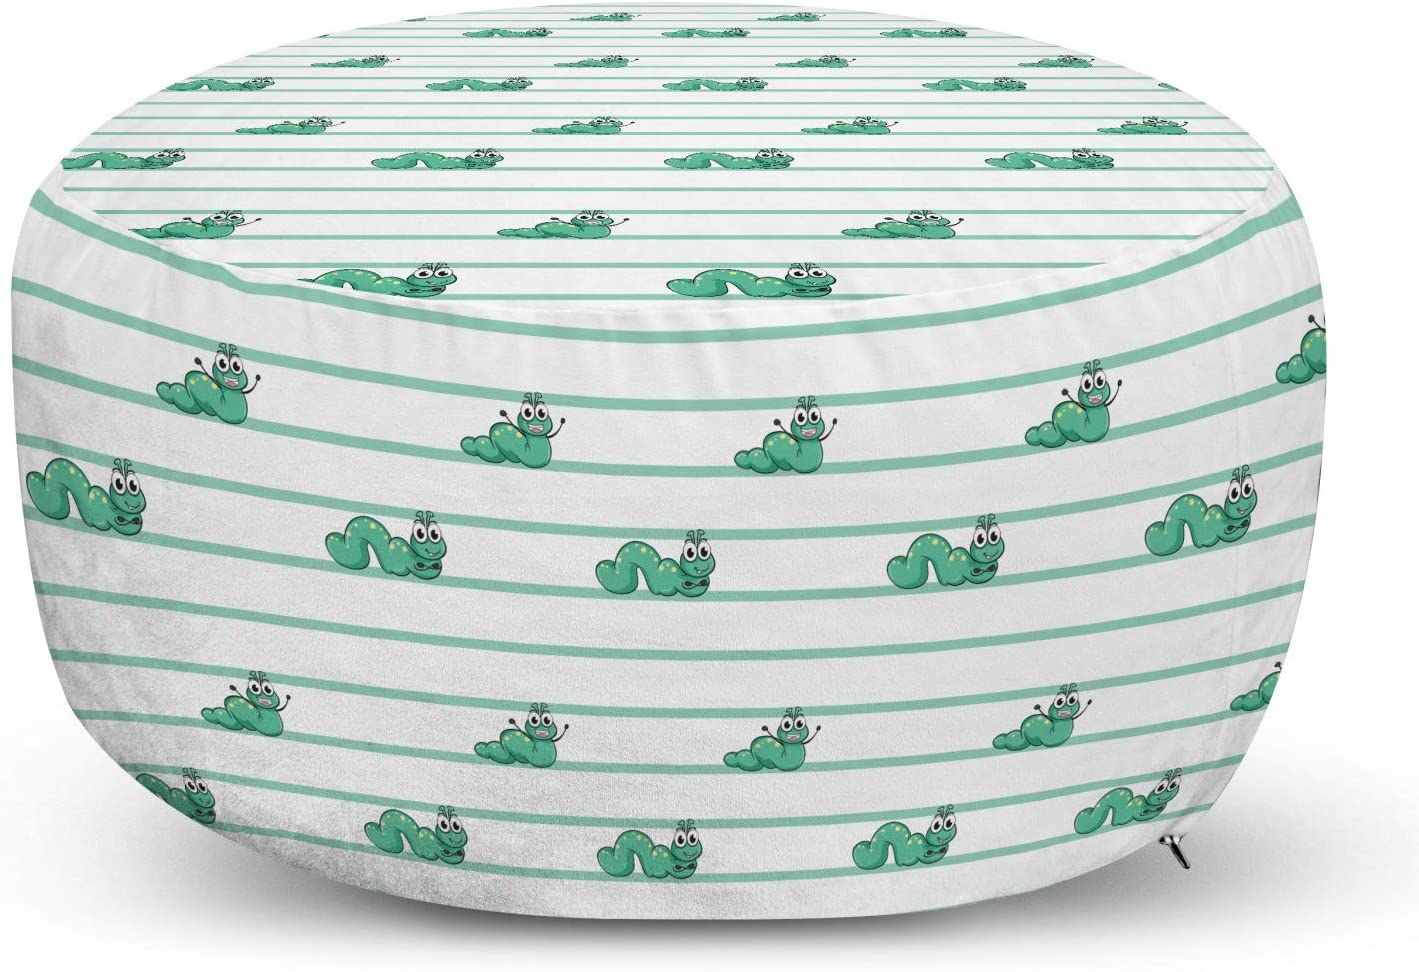 Lunarable Caterpillar Pouf Cover with D OFFicial site Limited price Worms Zipper Green